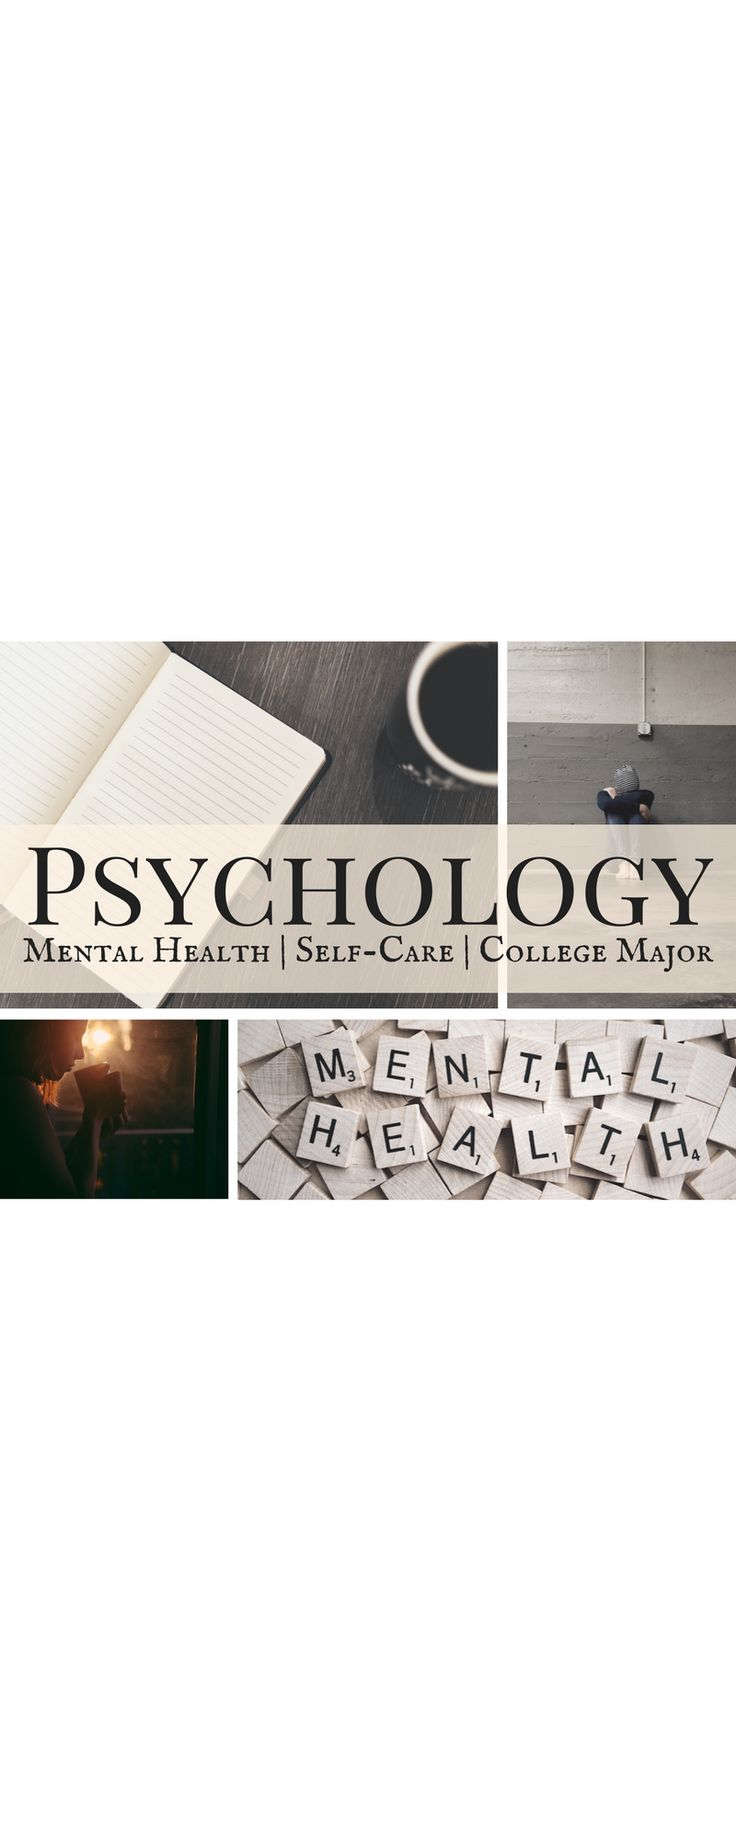 Psychology (double major)